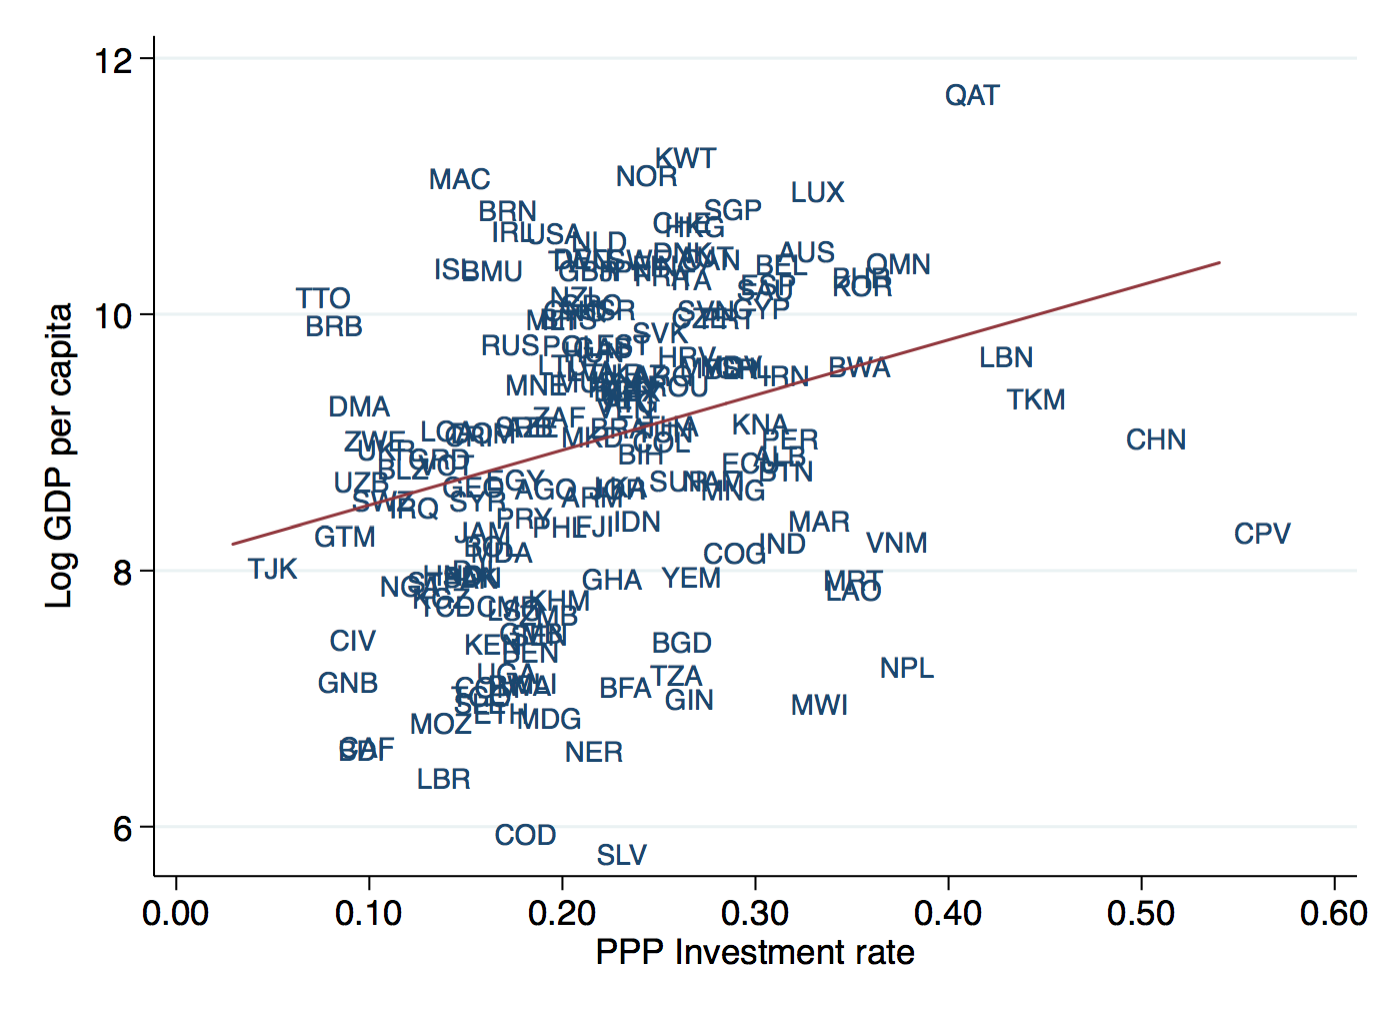 Investment and GDP per capita